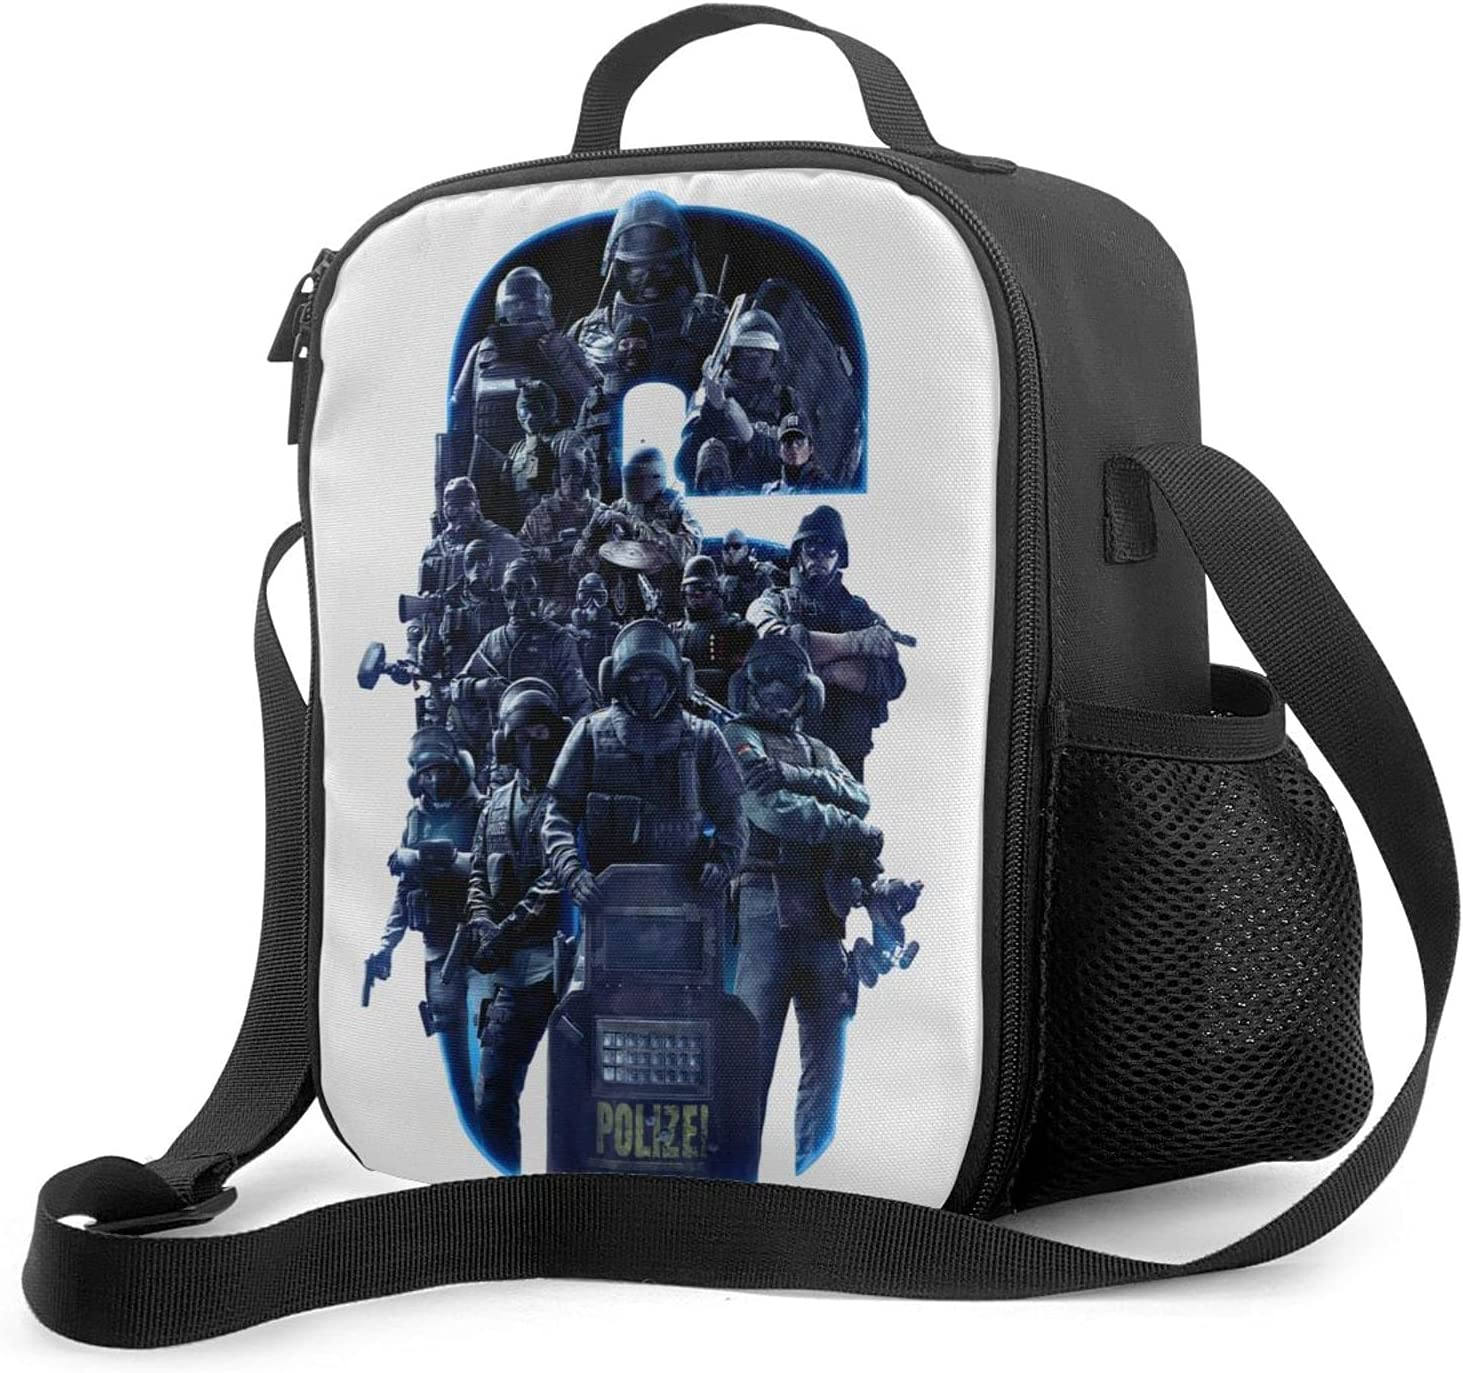 Rainbow Six Siege Lunch bags picnic can kep discount that be Bargain lunch boxes